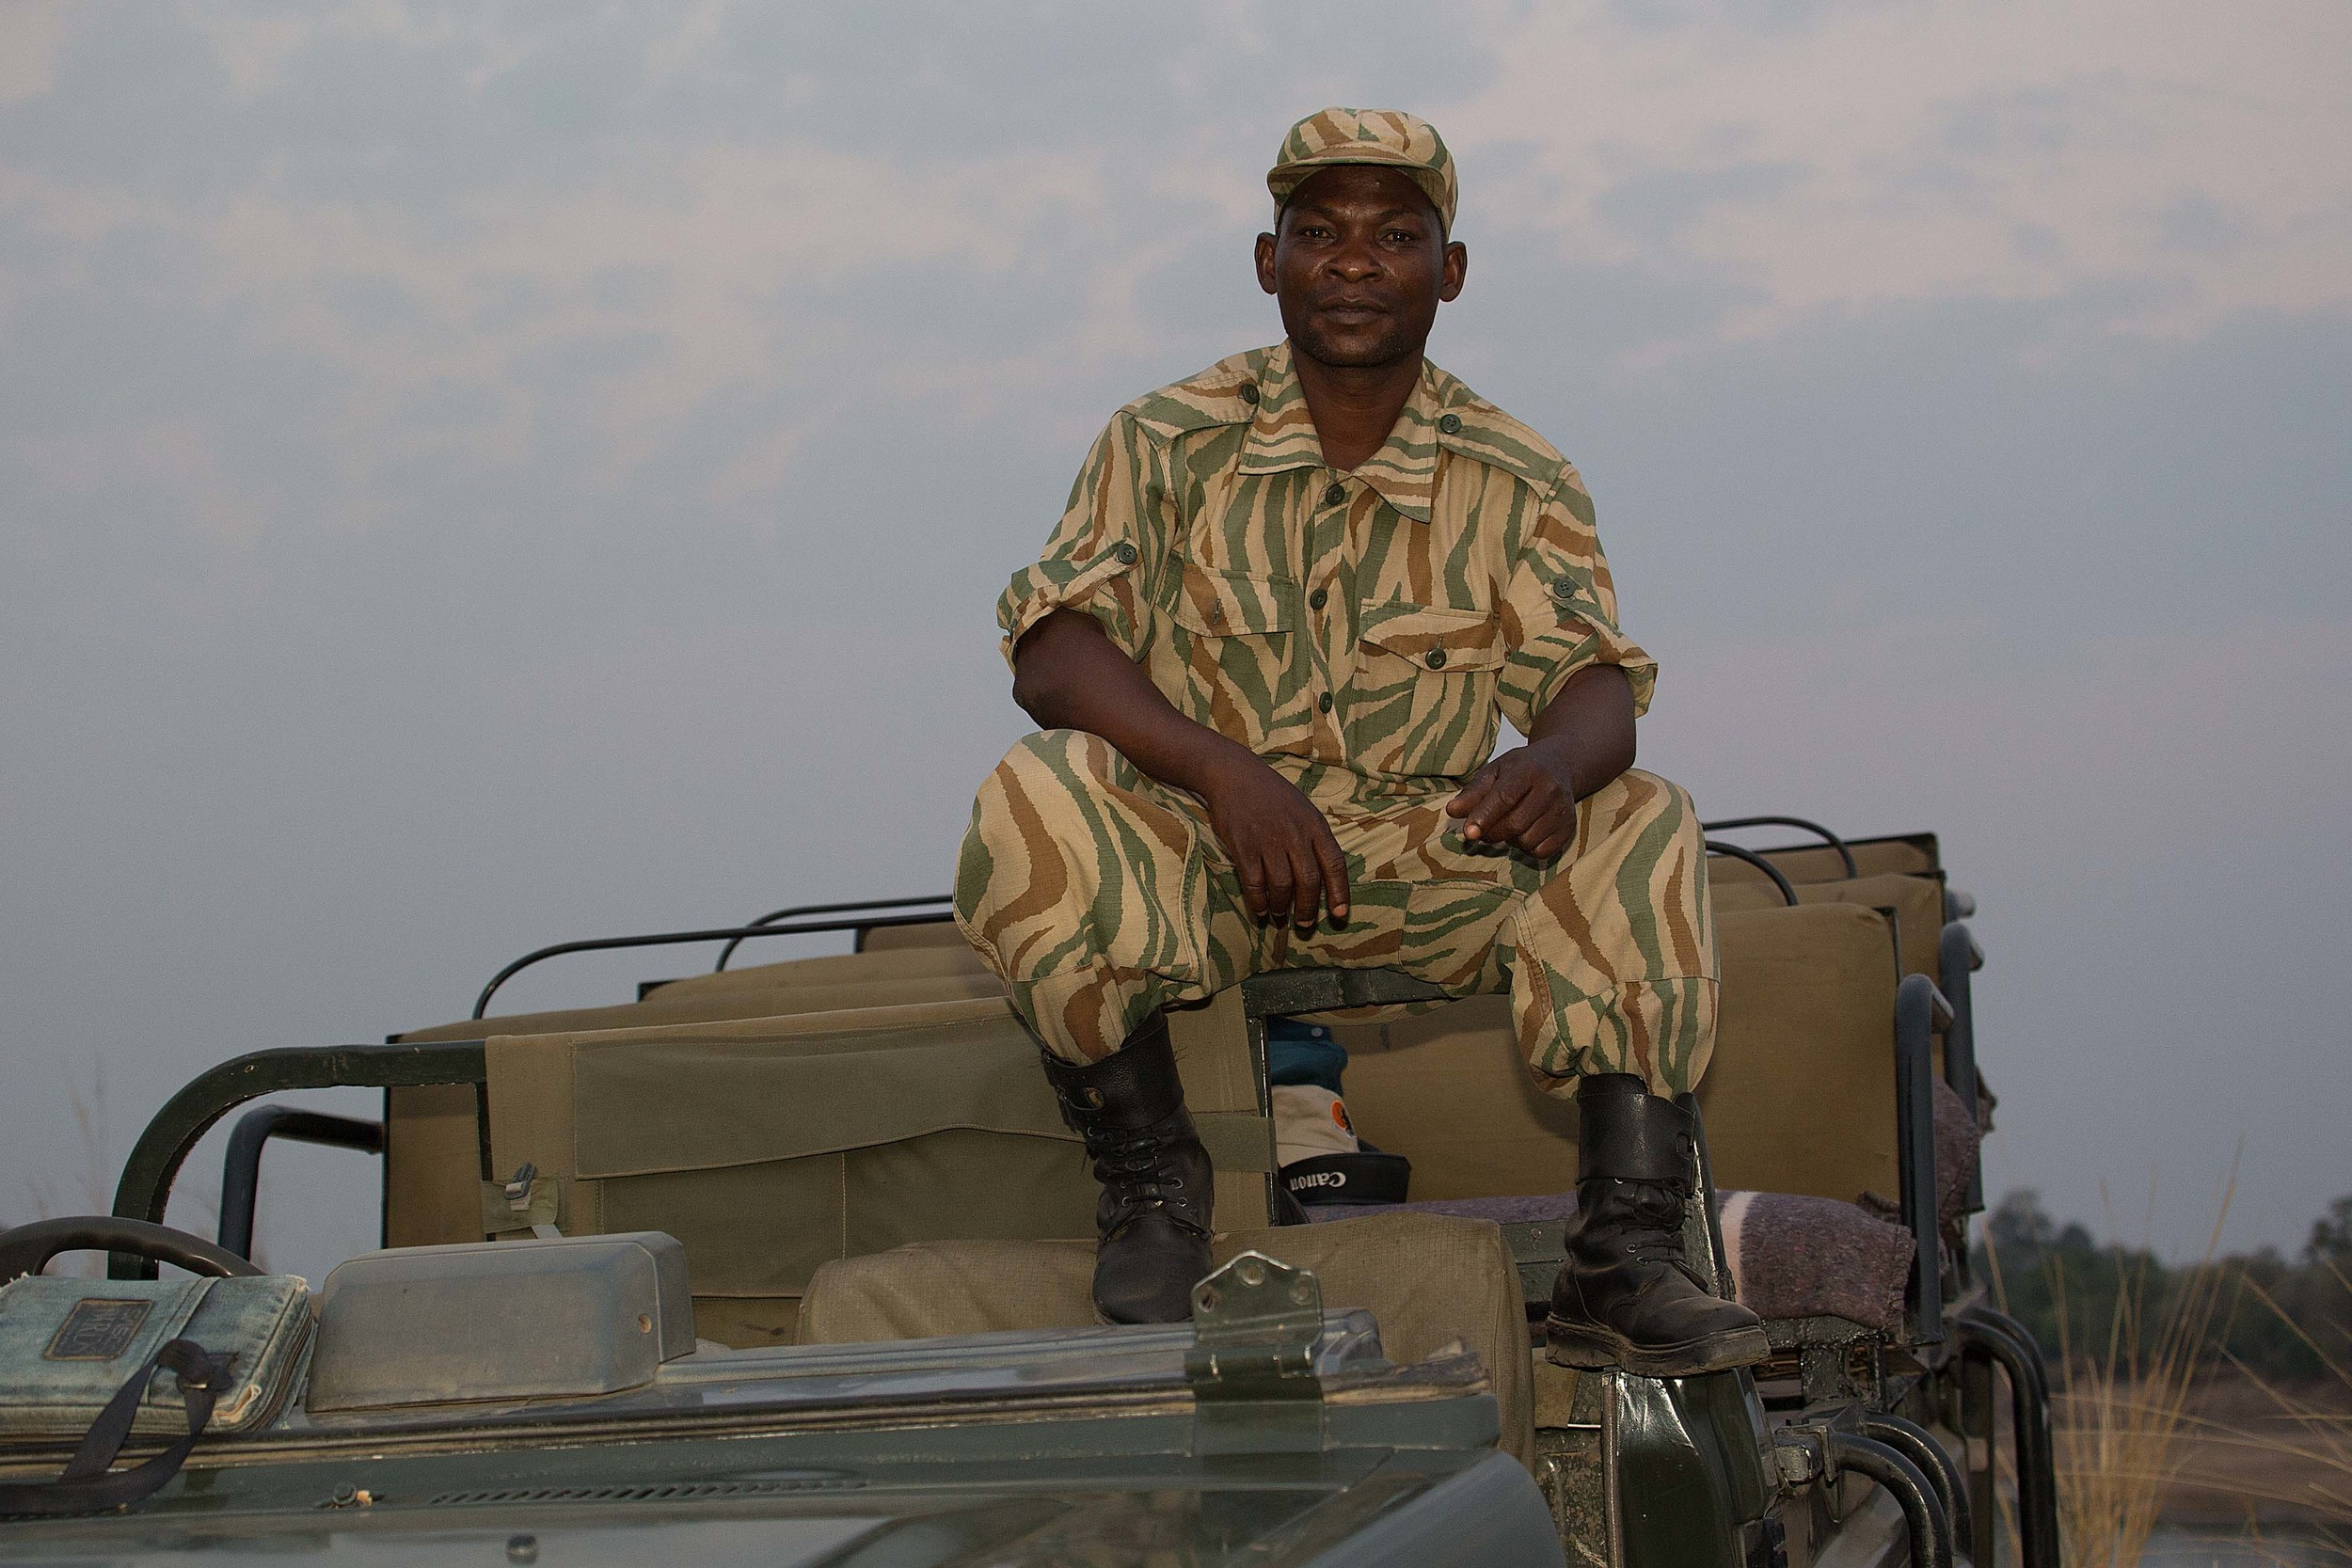 A ranger from Zambia's Department of National Parks and Wildlife, the boots on the ground protecting elephants from poachers.